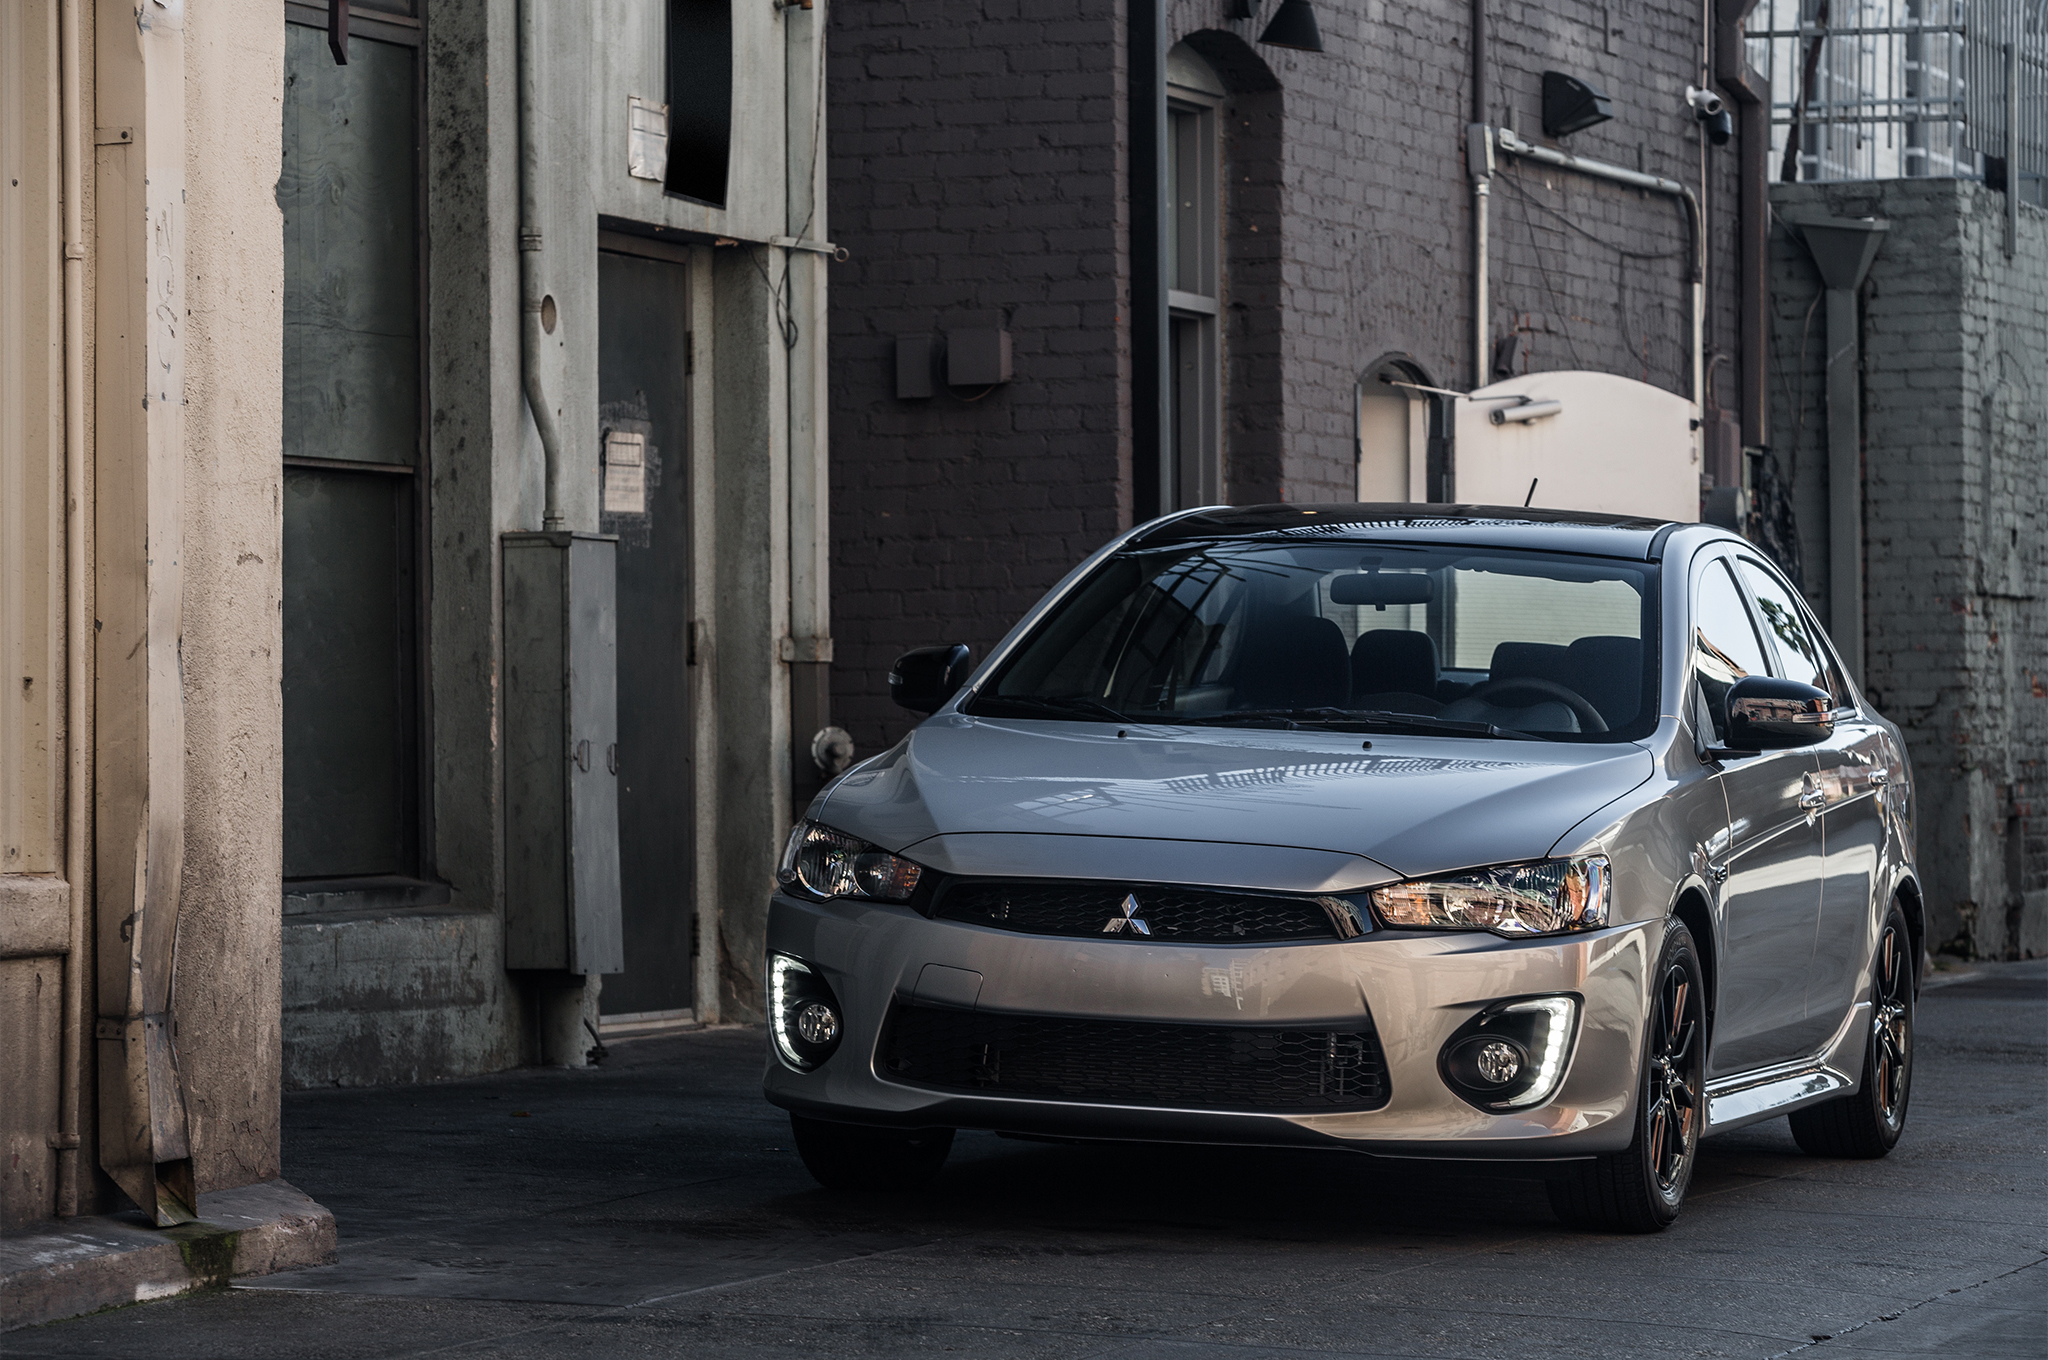 2017-Mitsubishi-Lancer-Limited-Edition-front-three-quarter-04